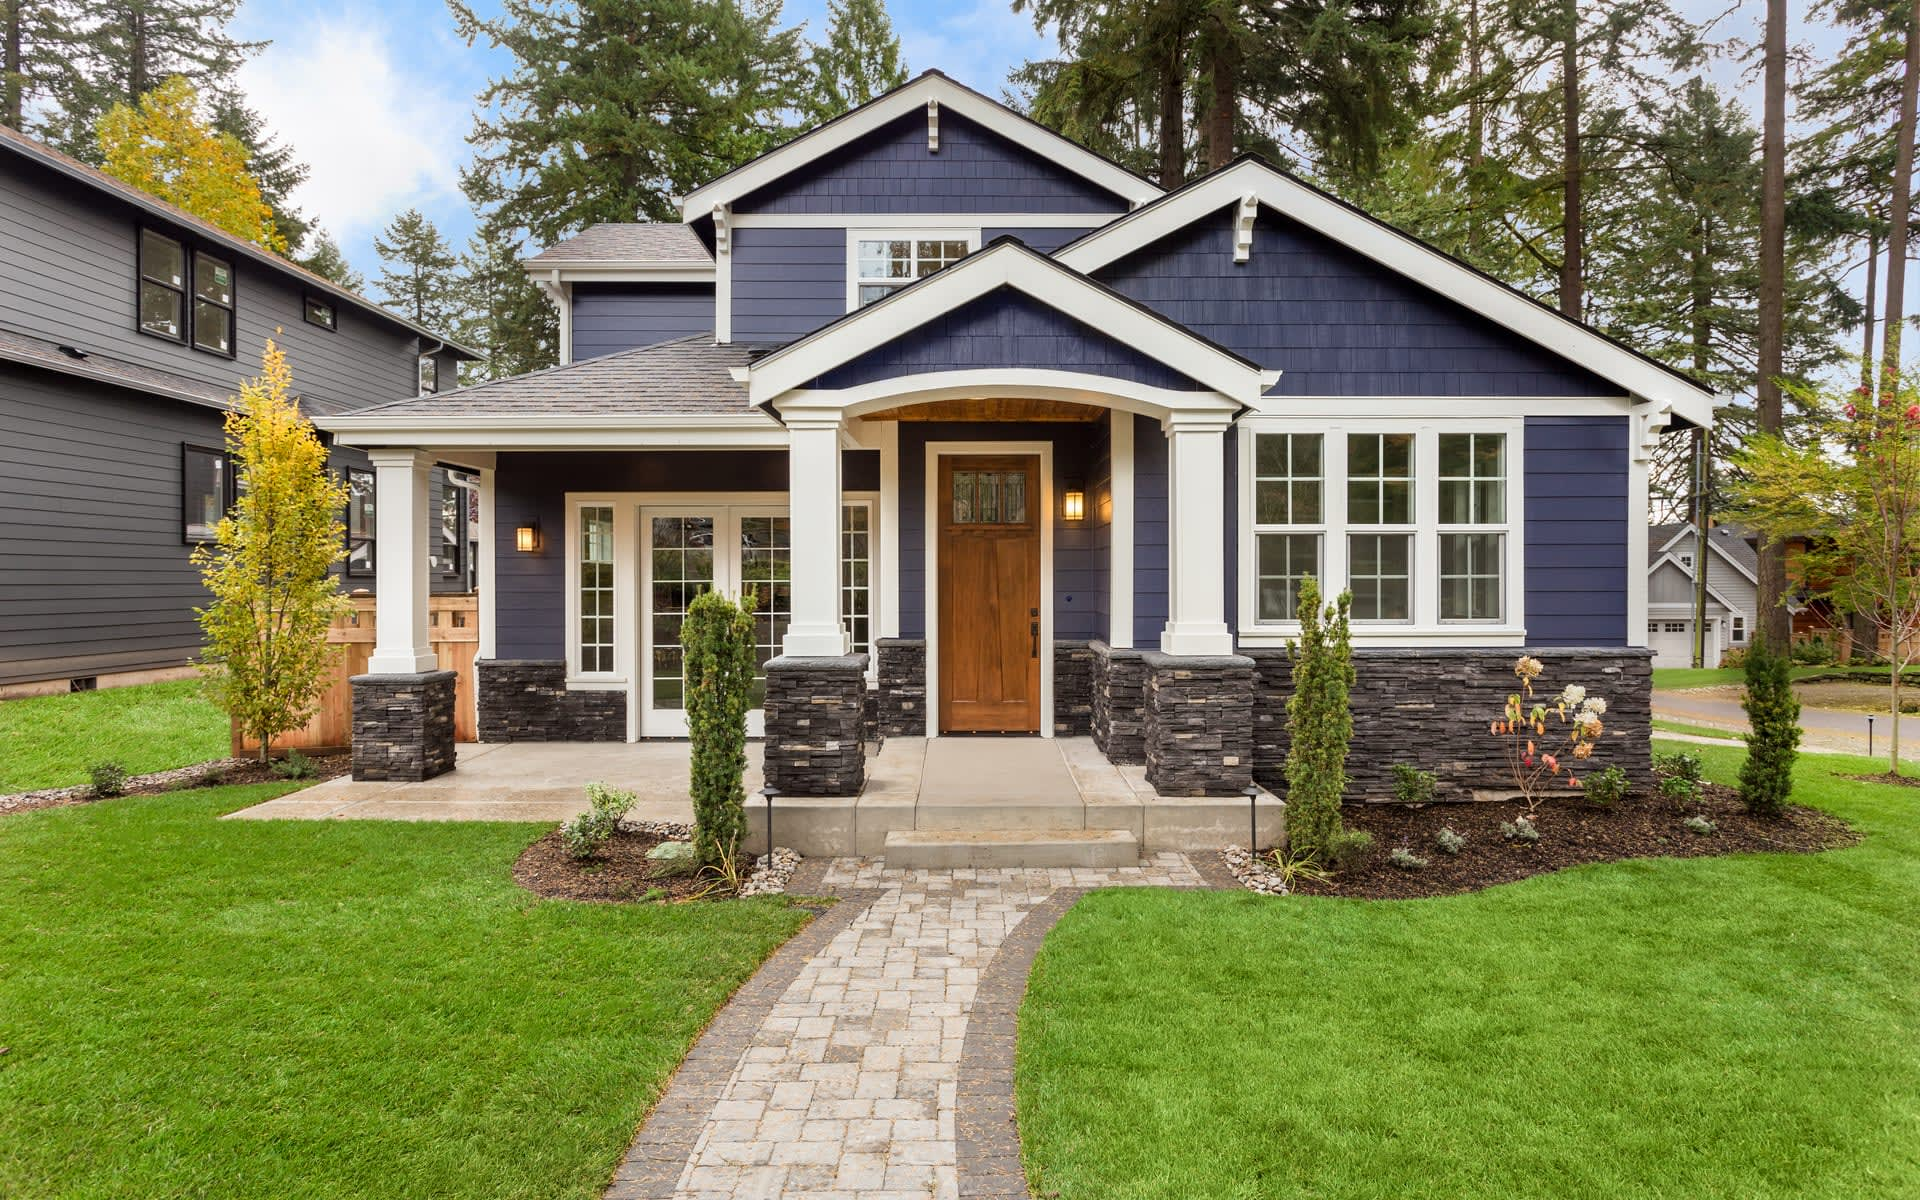 Home-Buying Myths